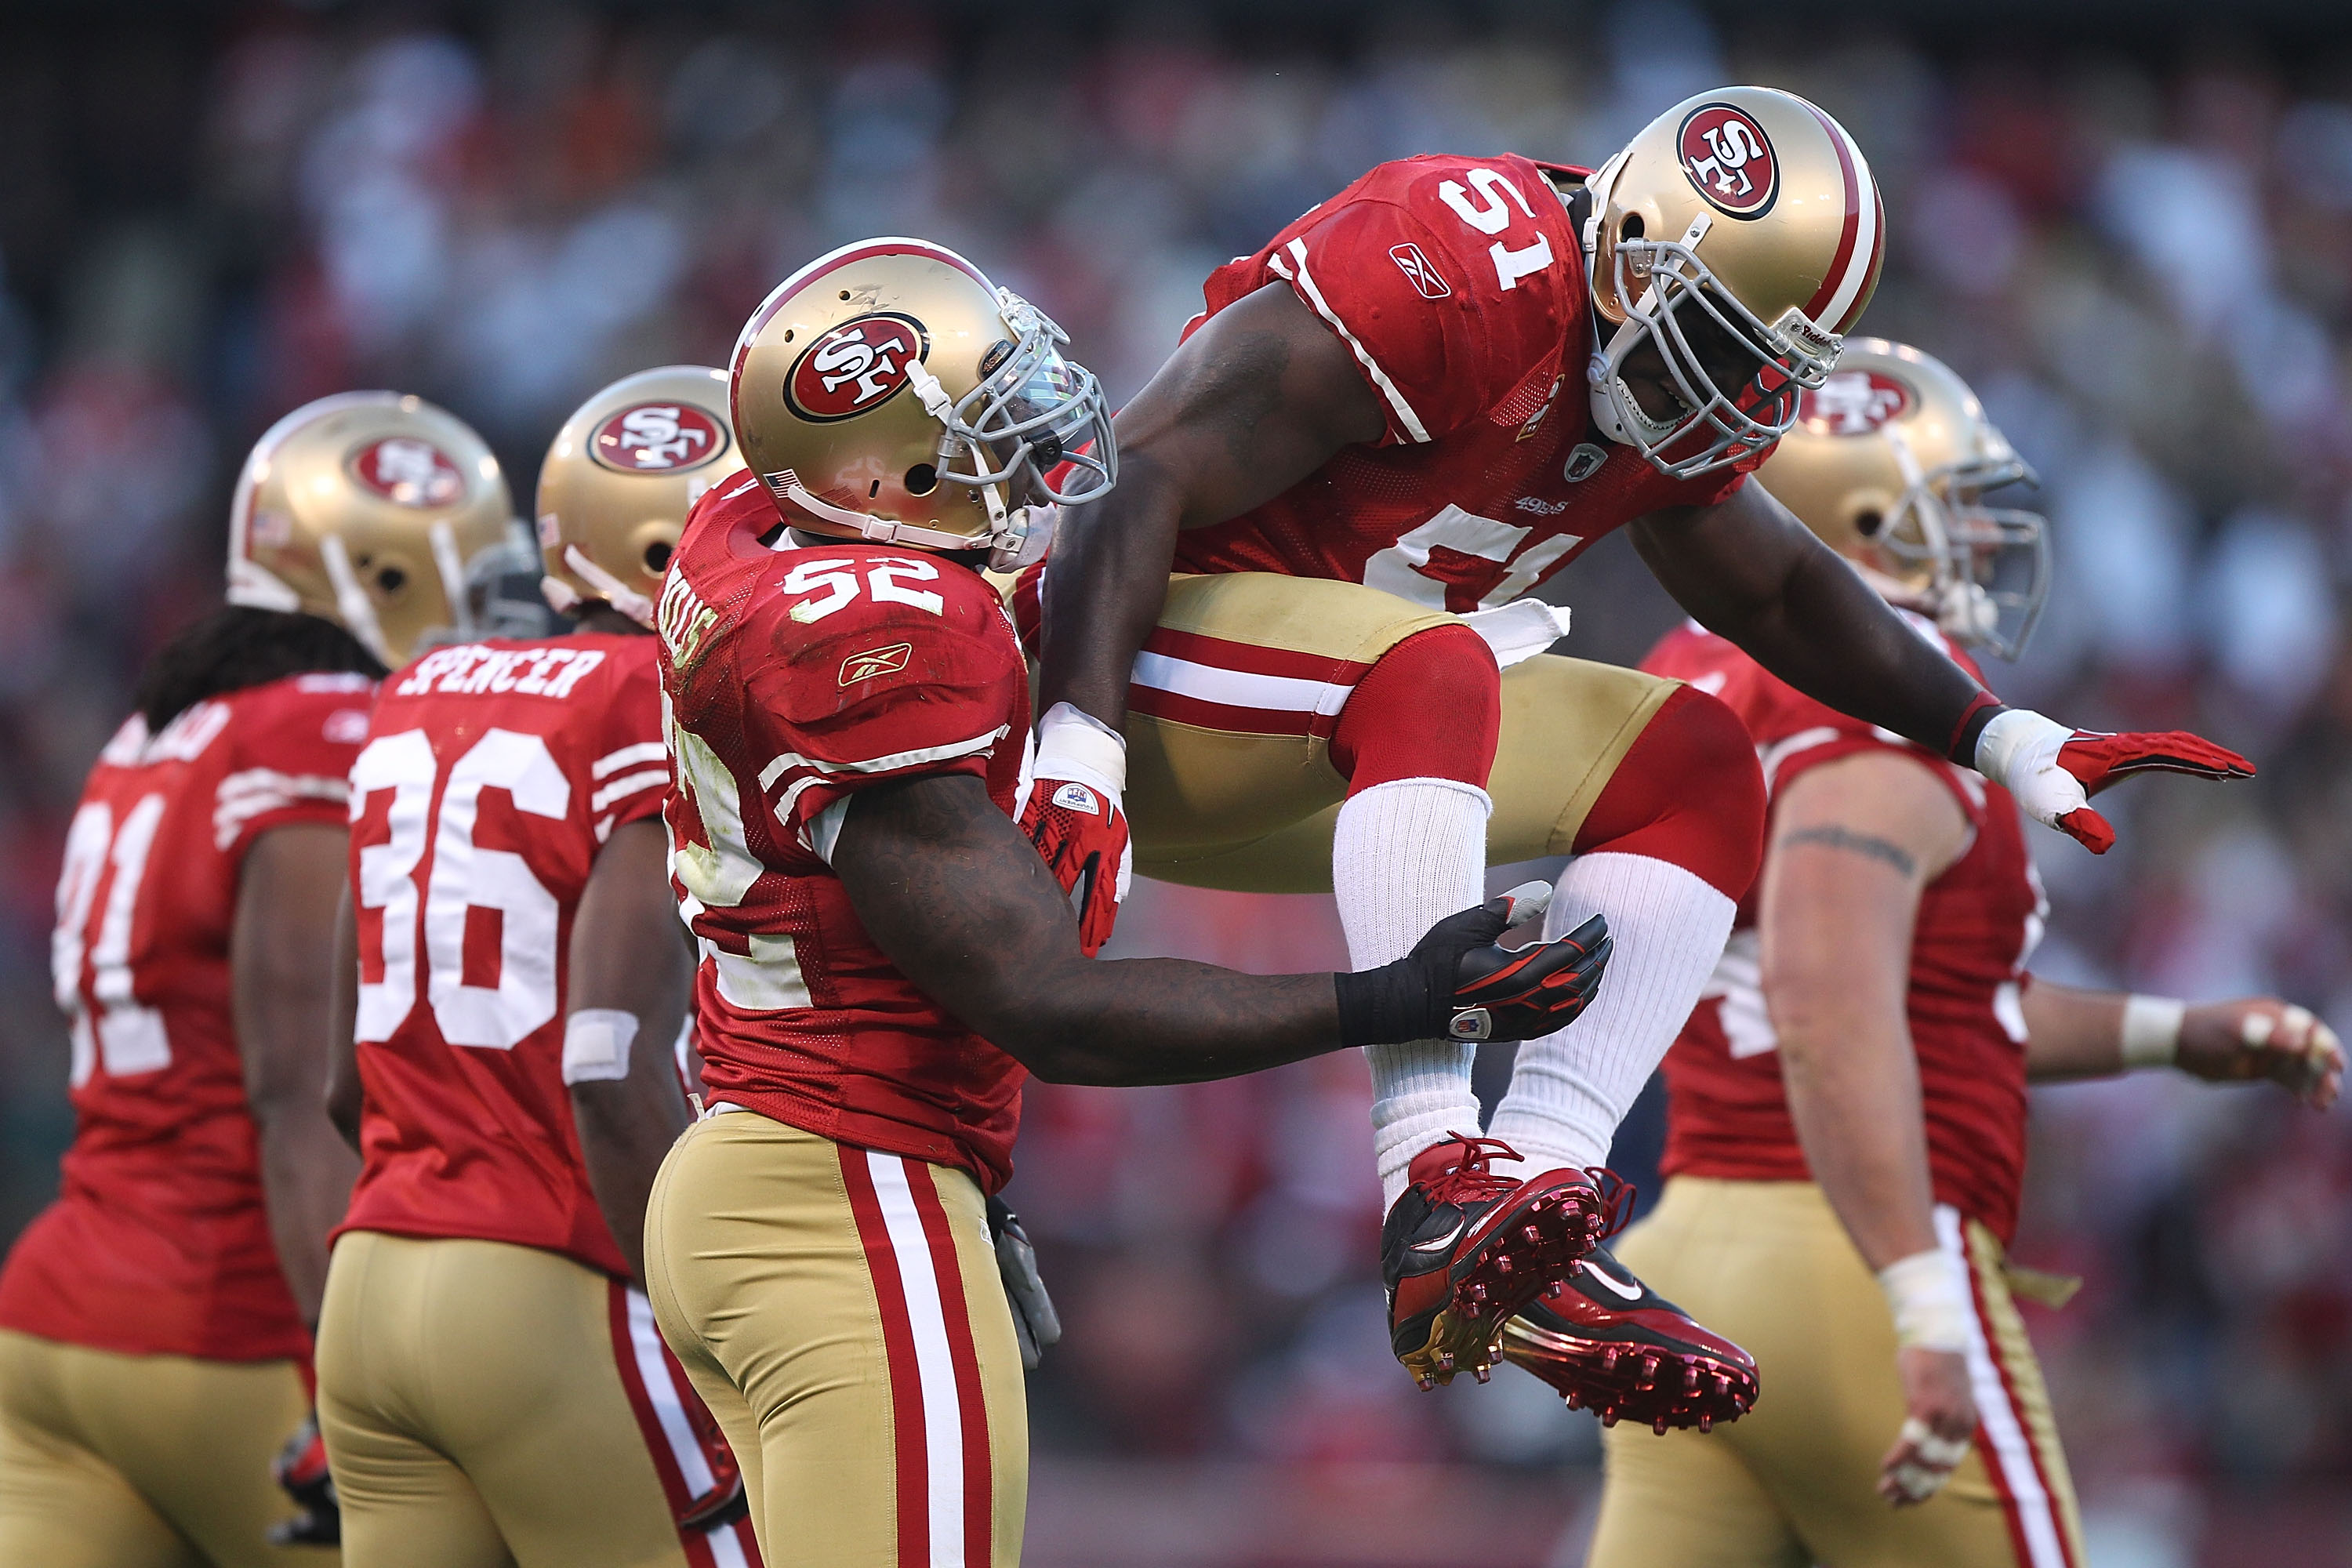 SAN FRANCISCO - SEPTEMBER 20:  Takeo Spikes #51 of the San Francisco 49er celebrates a tackle against the New Orleans Saints during an NFL game at Candlestick Park on September 20, 2010 in San Francisco, California.(Photo by Jed Jacobsohn/Getty Images)